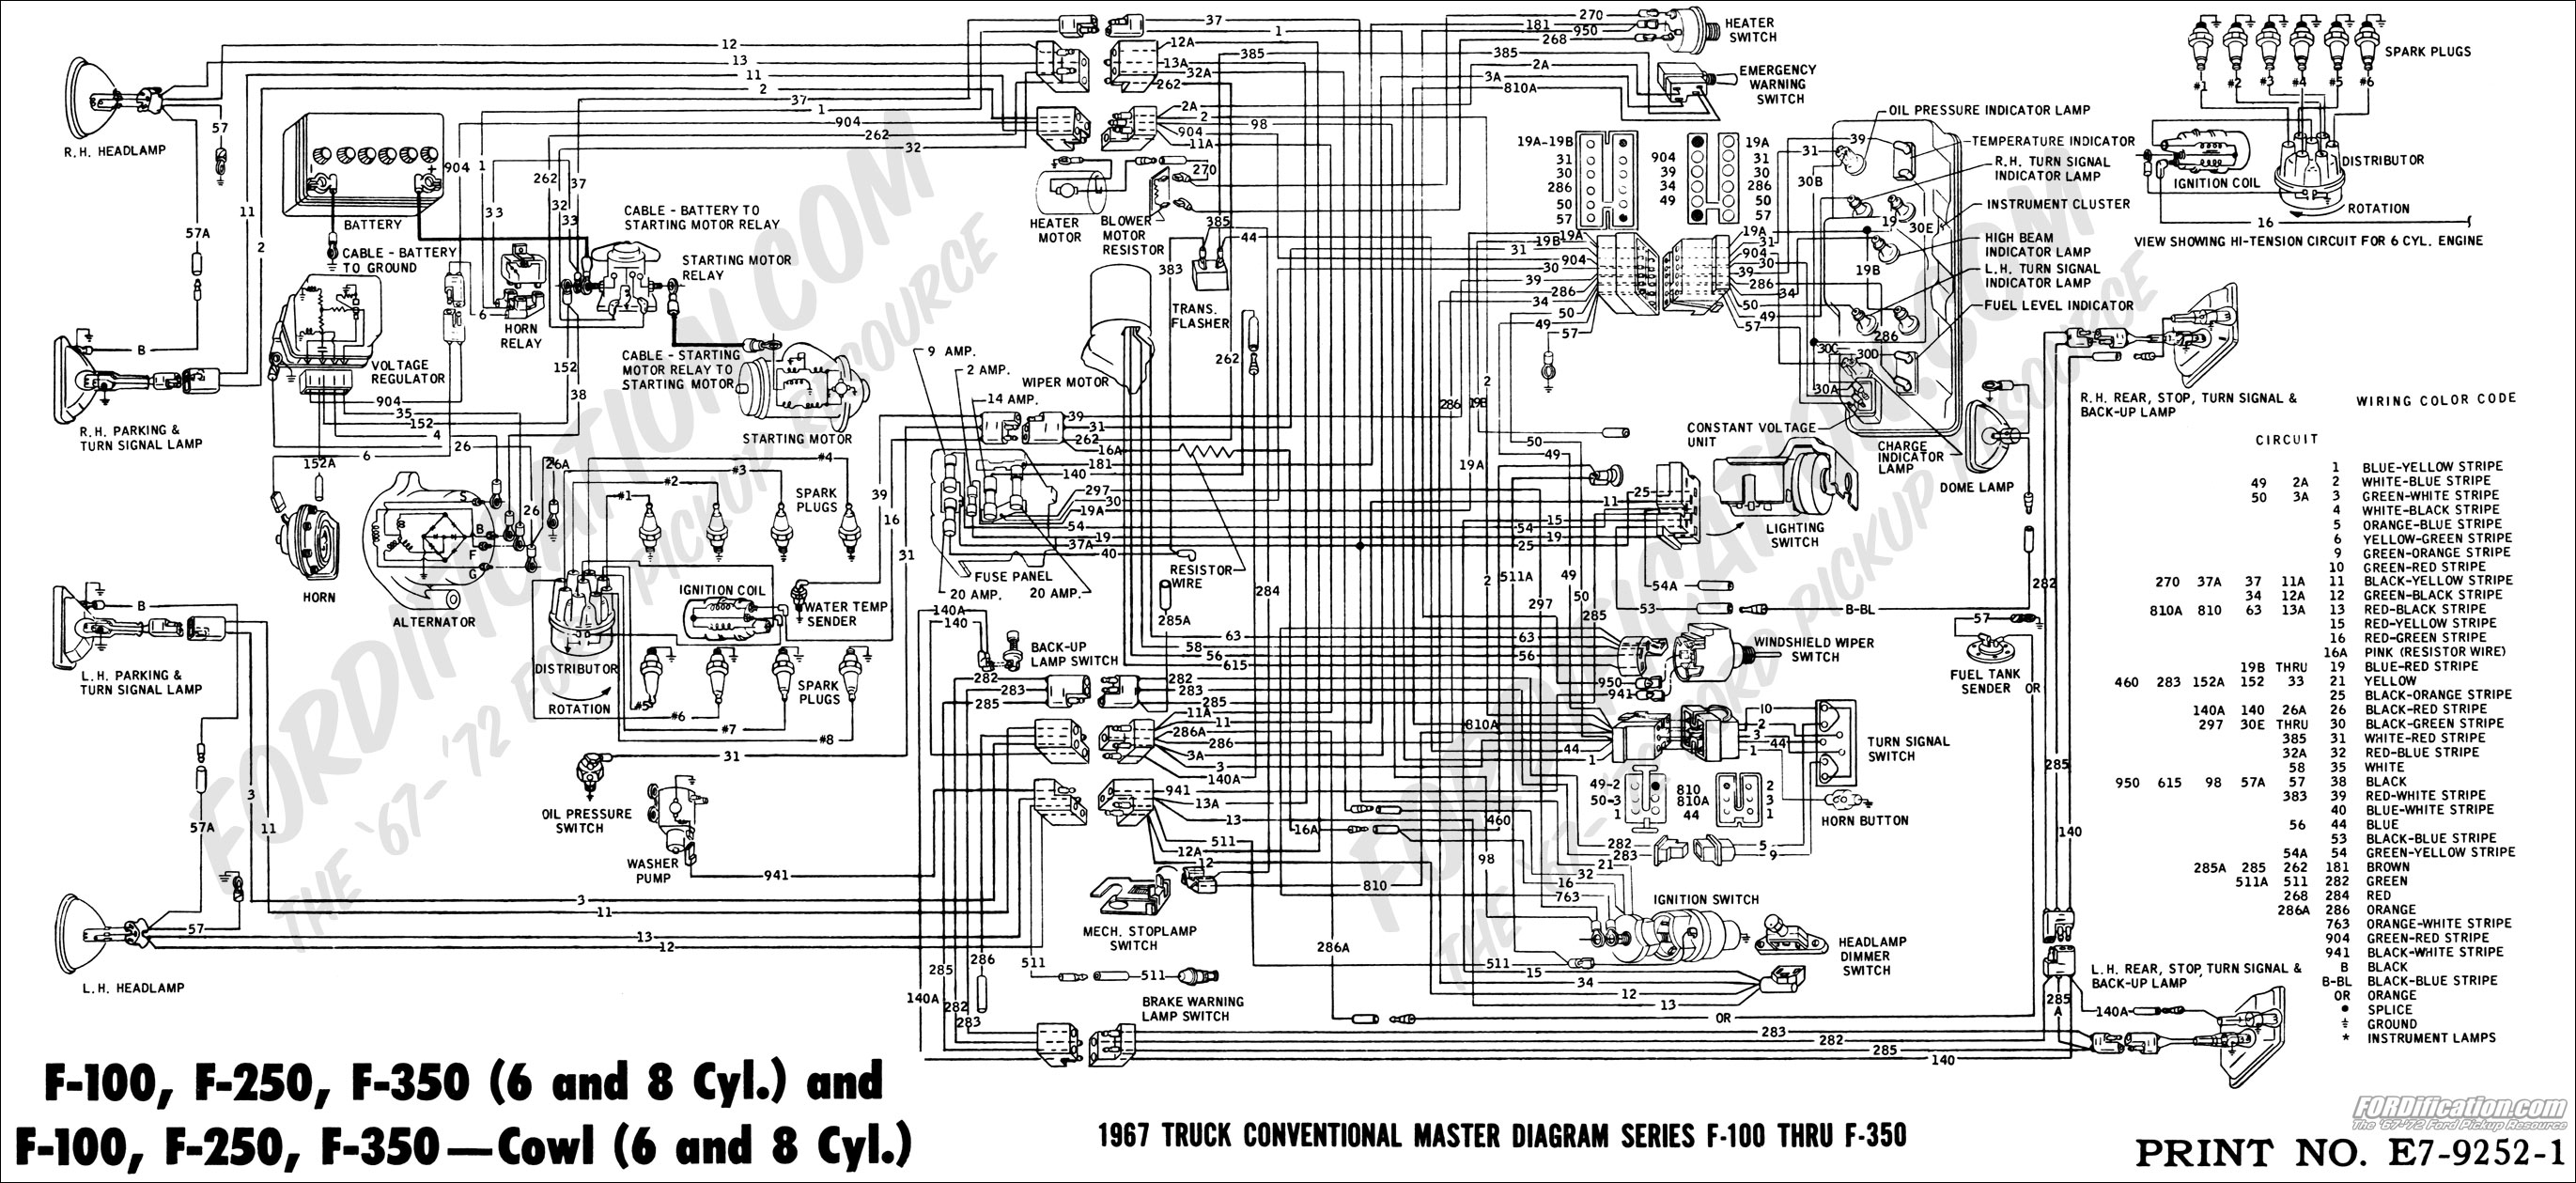 67masterdiagram 93 ford f 350 trailer wiring diagram wiring diagram simonand wiring diagram mirrors 2009 ford f150 truck at creativeand.co